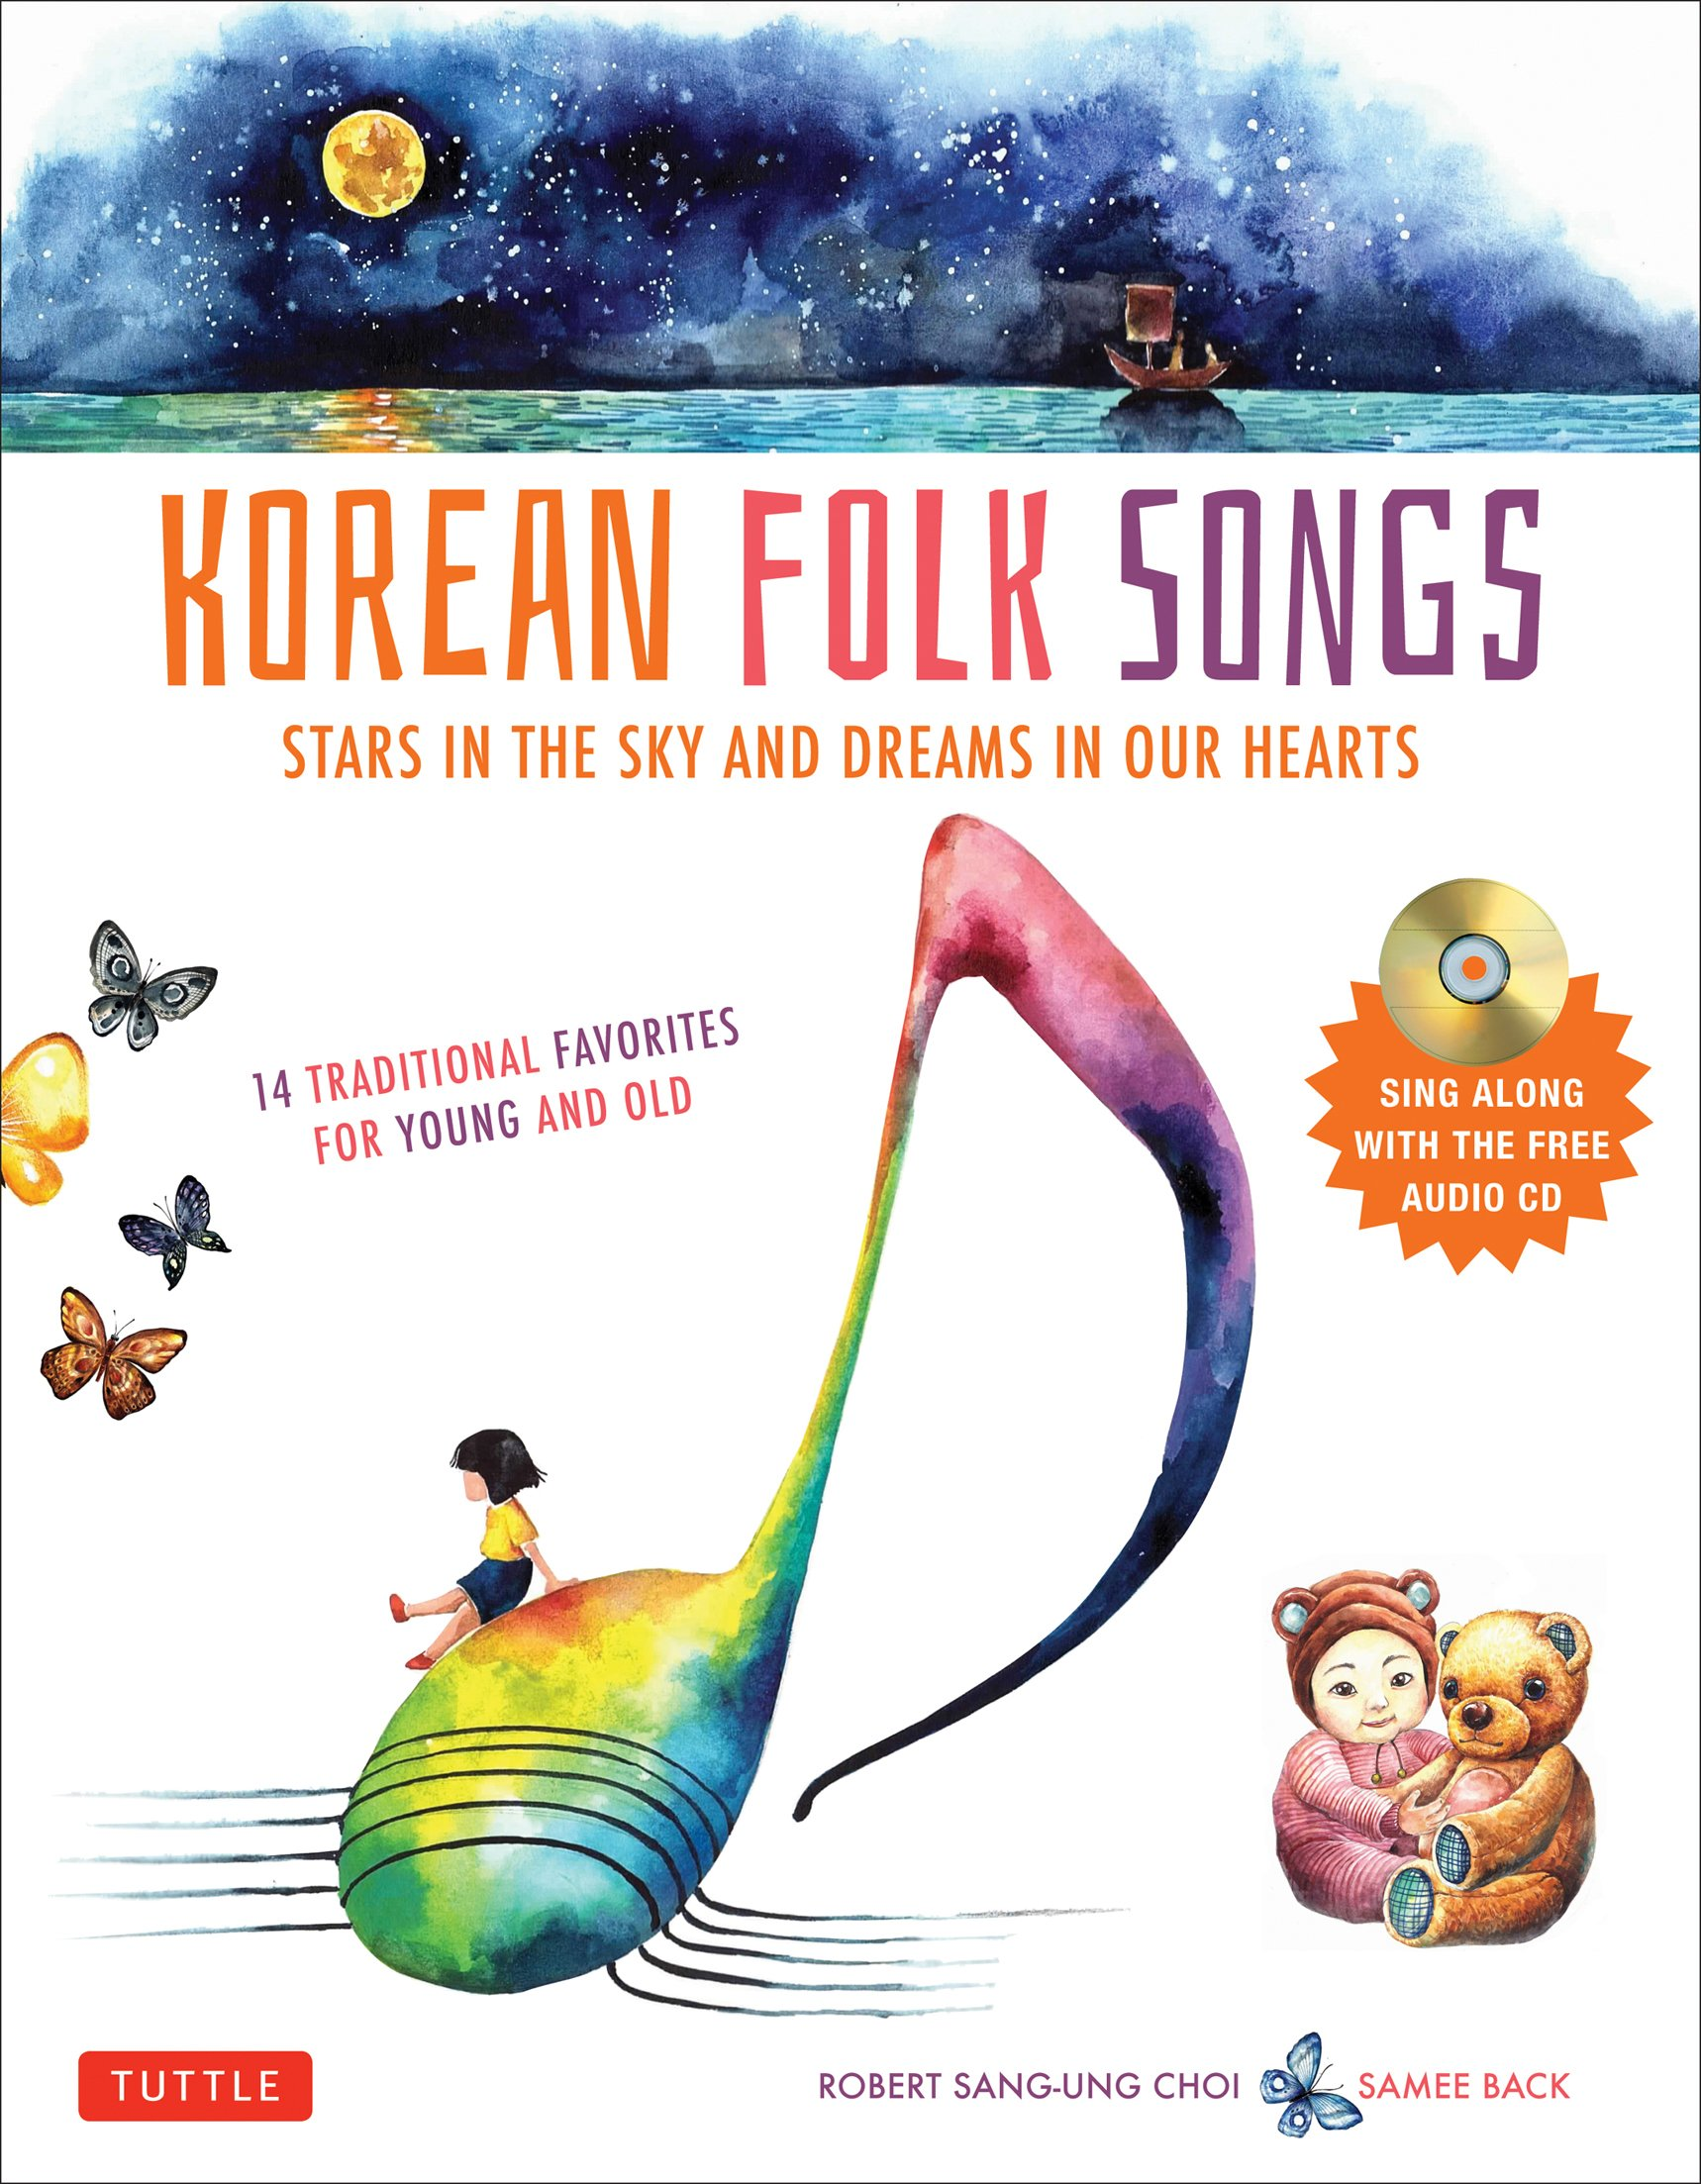 Korean Folk Songs: Stars in the Sky and Dreams in Our Hearts [14 Sing Along Songs with the Audio CD included] by Tuttle Publishing